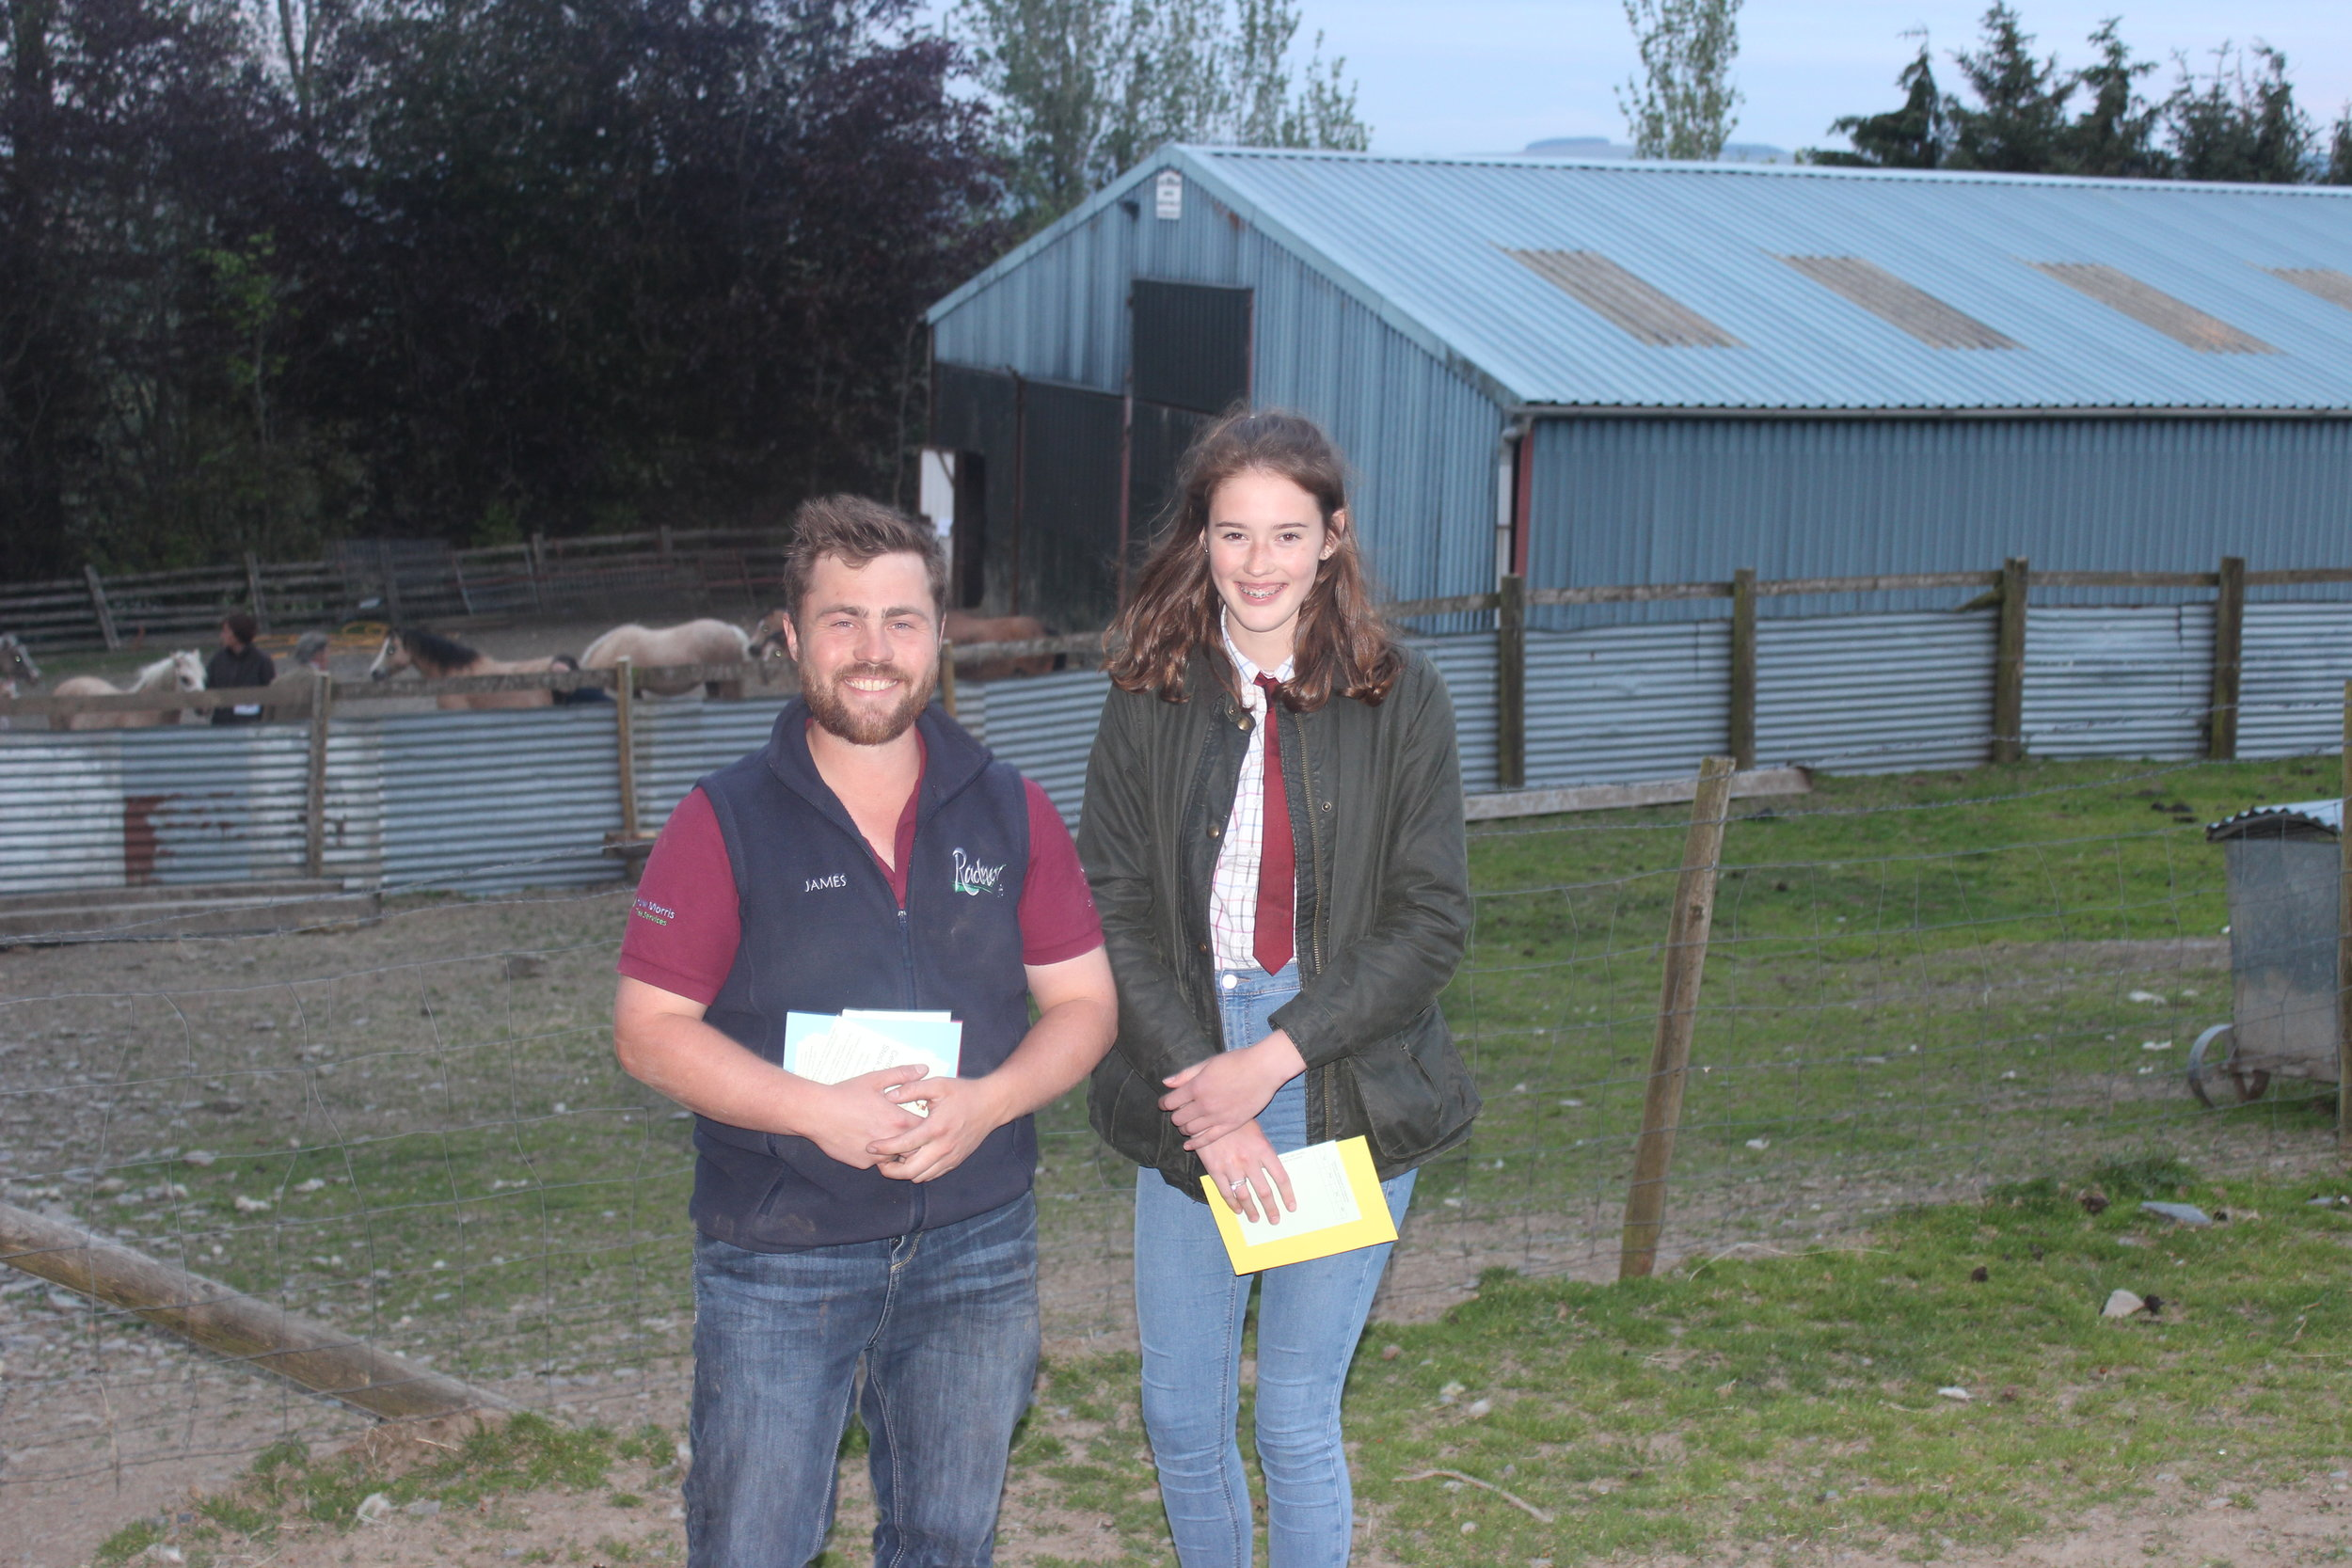 Frankie Jones, Radnor Valley YFC - 3rd place in the Under 16 Section A Stockjudging with County Chairman James Poulton.